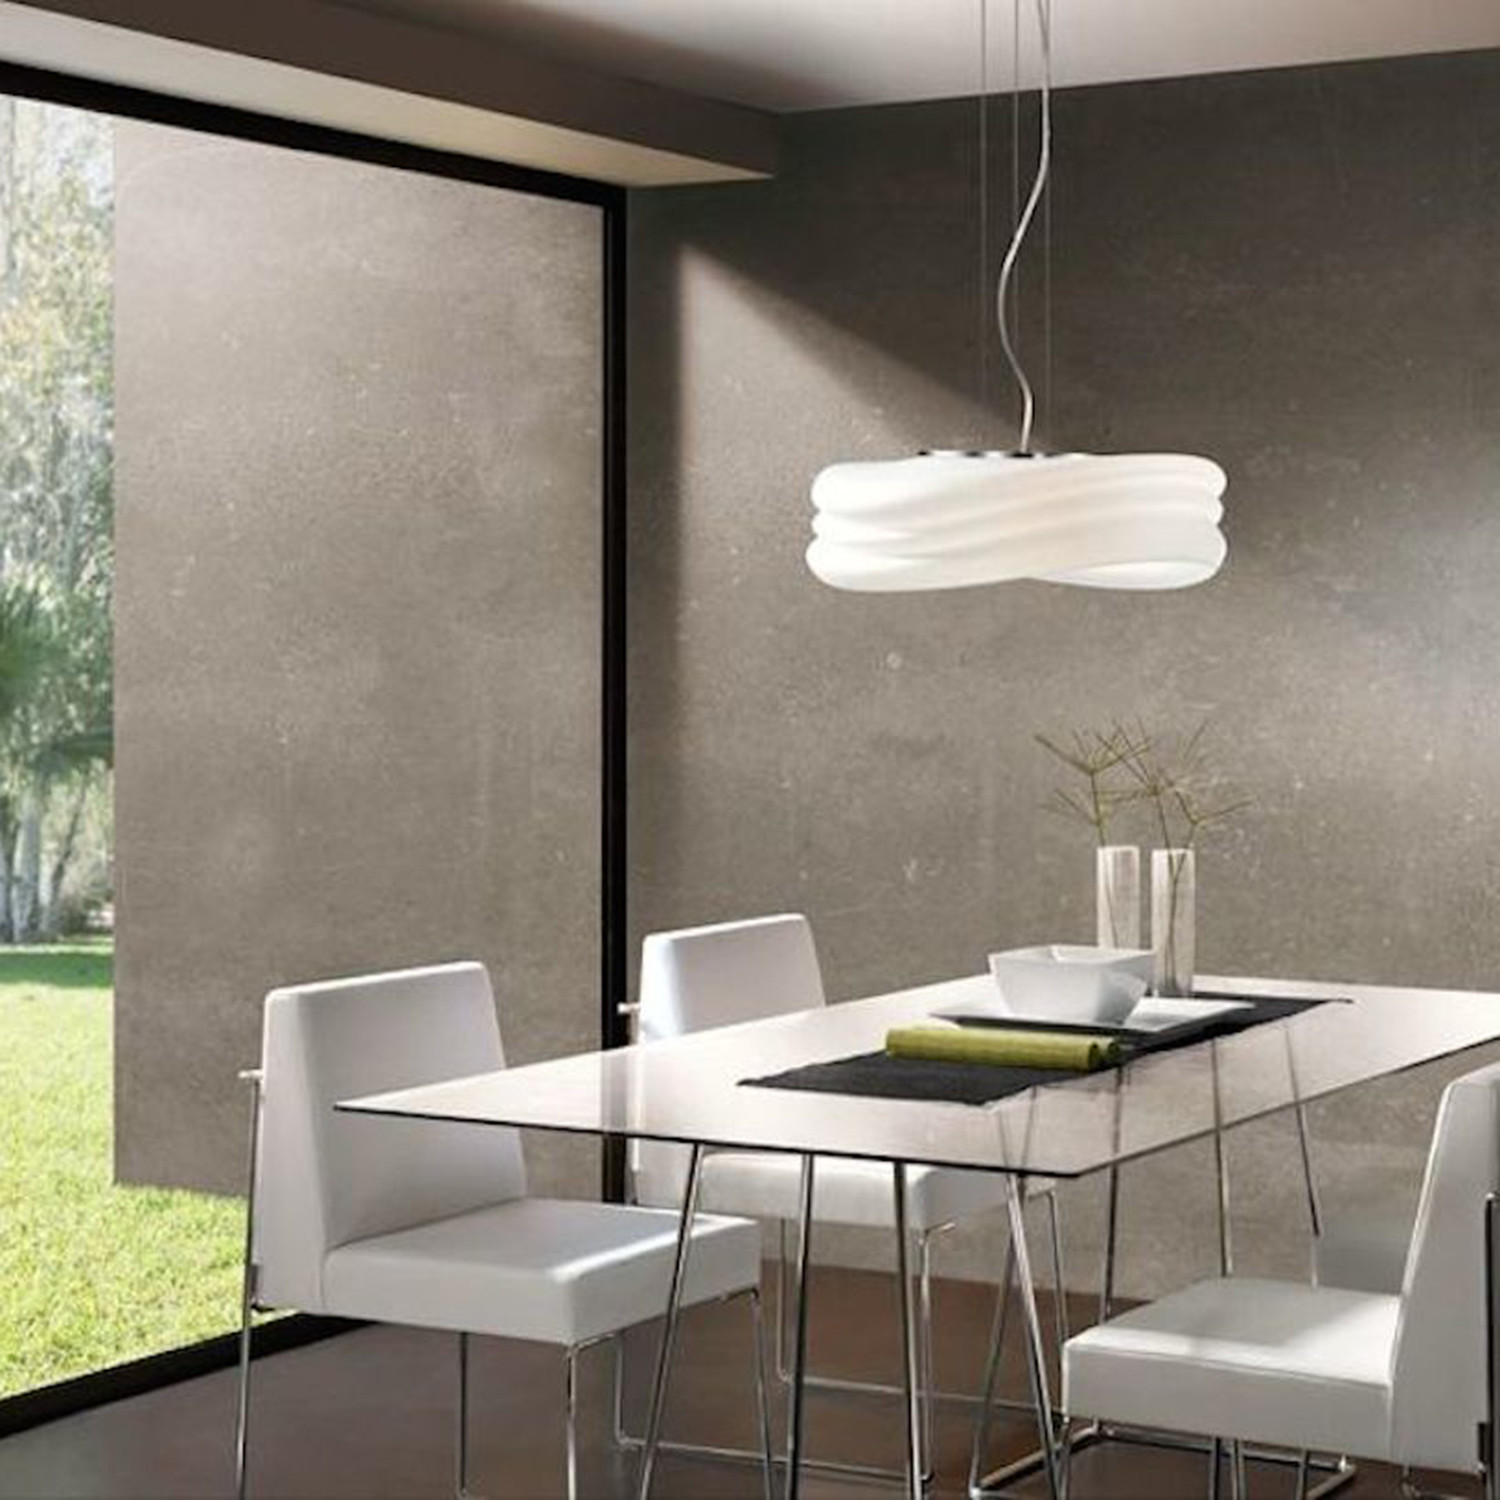 Zeppelin Pendant Lamp - Contempo Lights - Touch of Modern